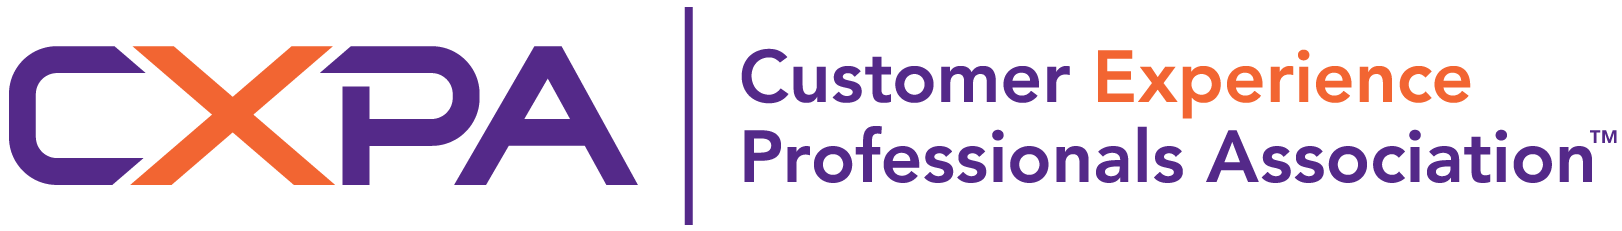 Customer Experience Professionals Association (CXPA) Help Center home page